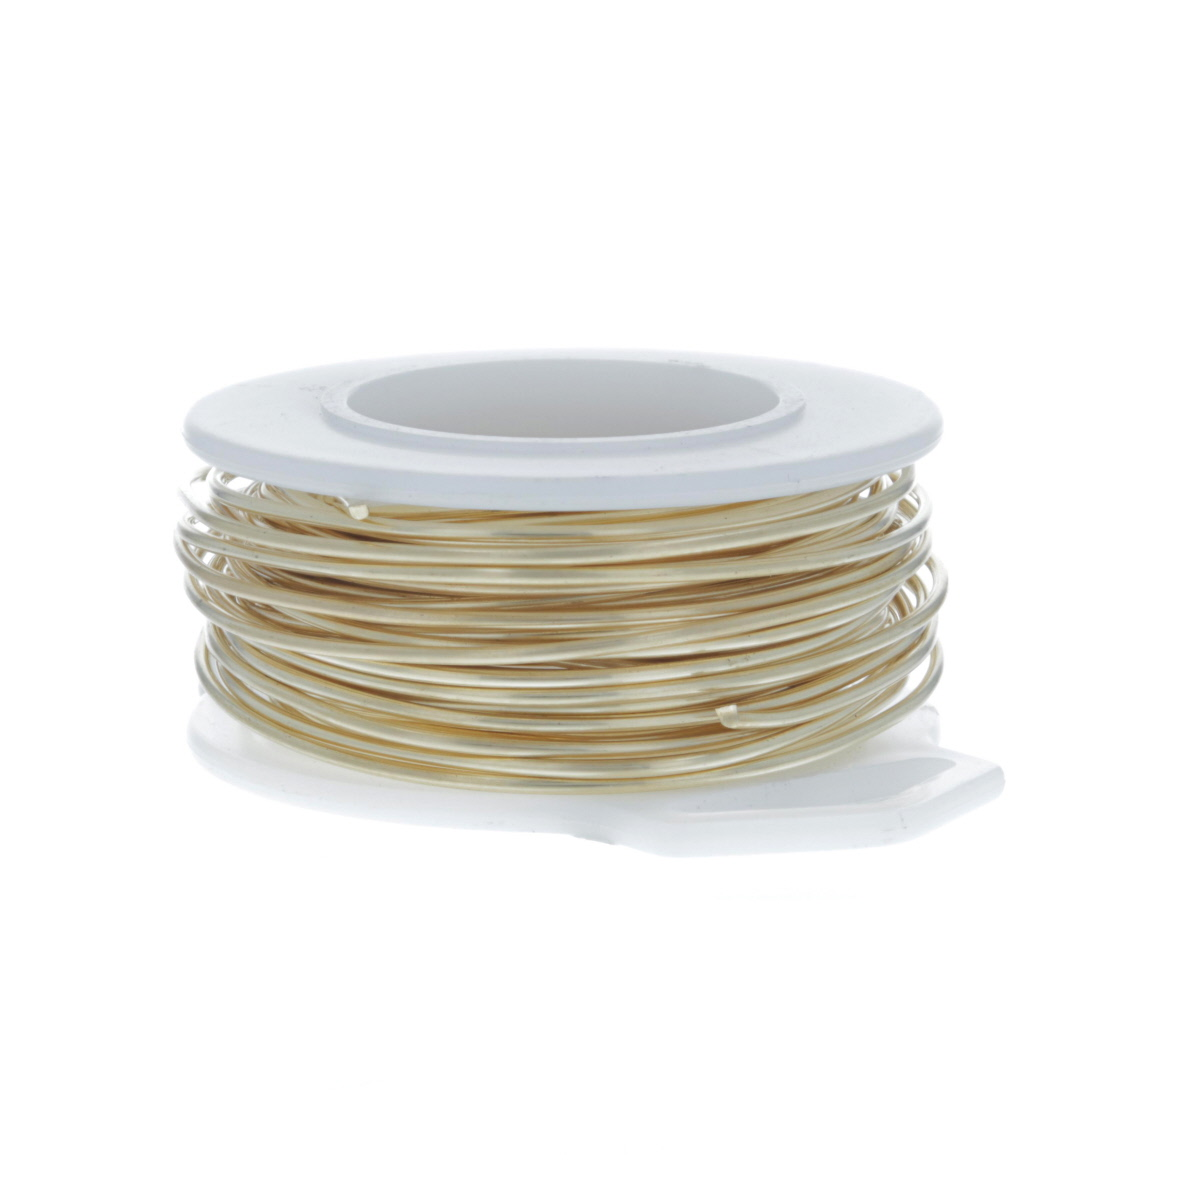 28 Gauge Round Gold Tone Brass Craft Wire - 120 ft